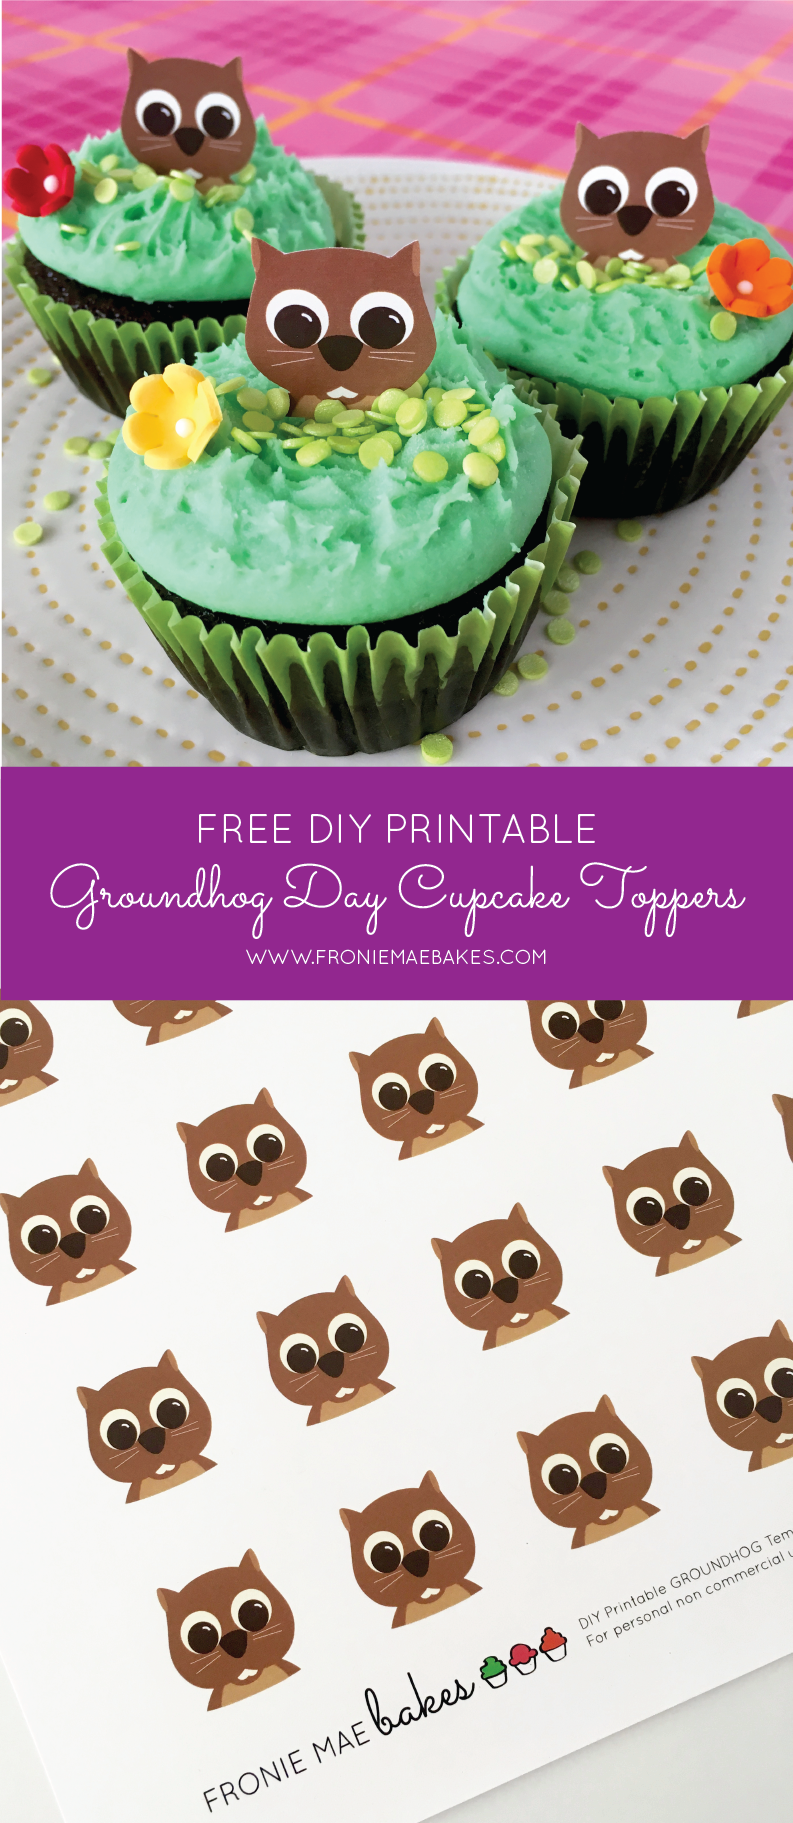 Make fun Groundhog's Day cupcake toppers with our FREE DIY printable Groundhog cupcake toppers. Get the file here: www.froniemaebakes.com